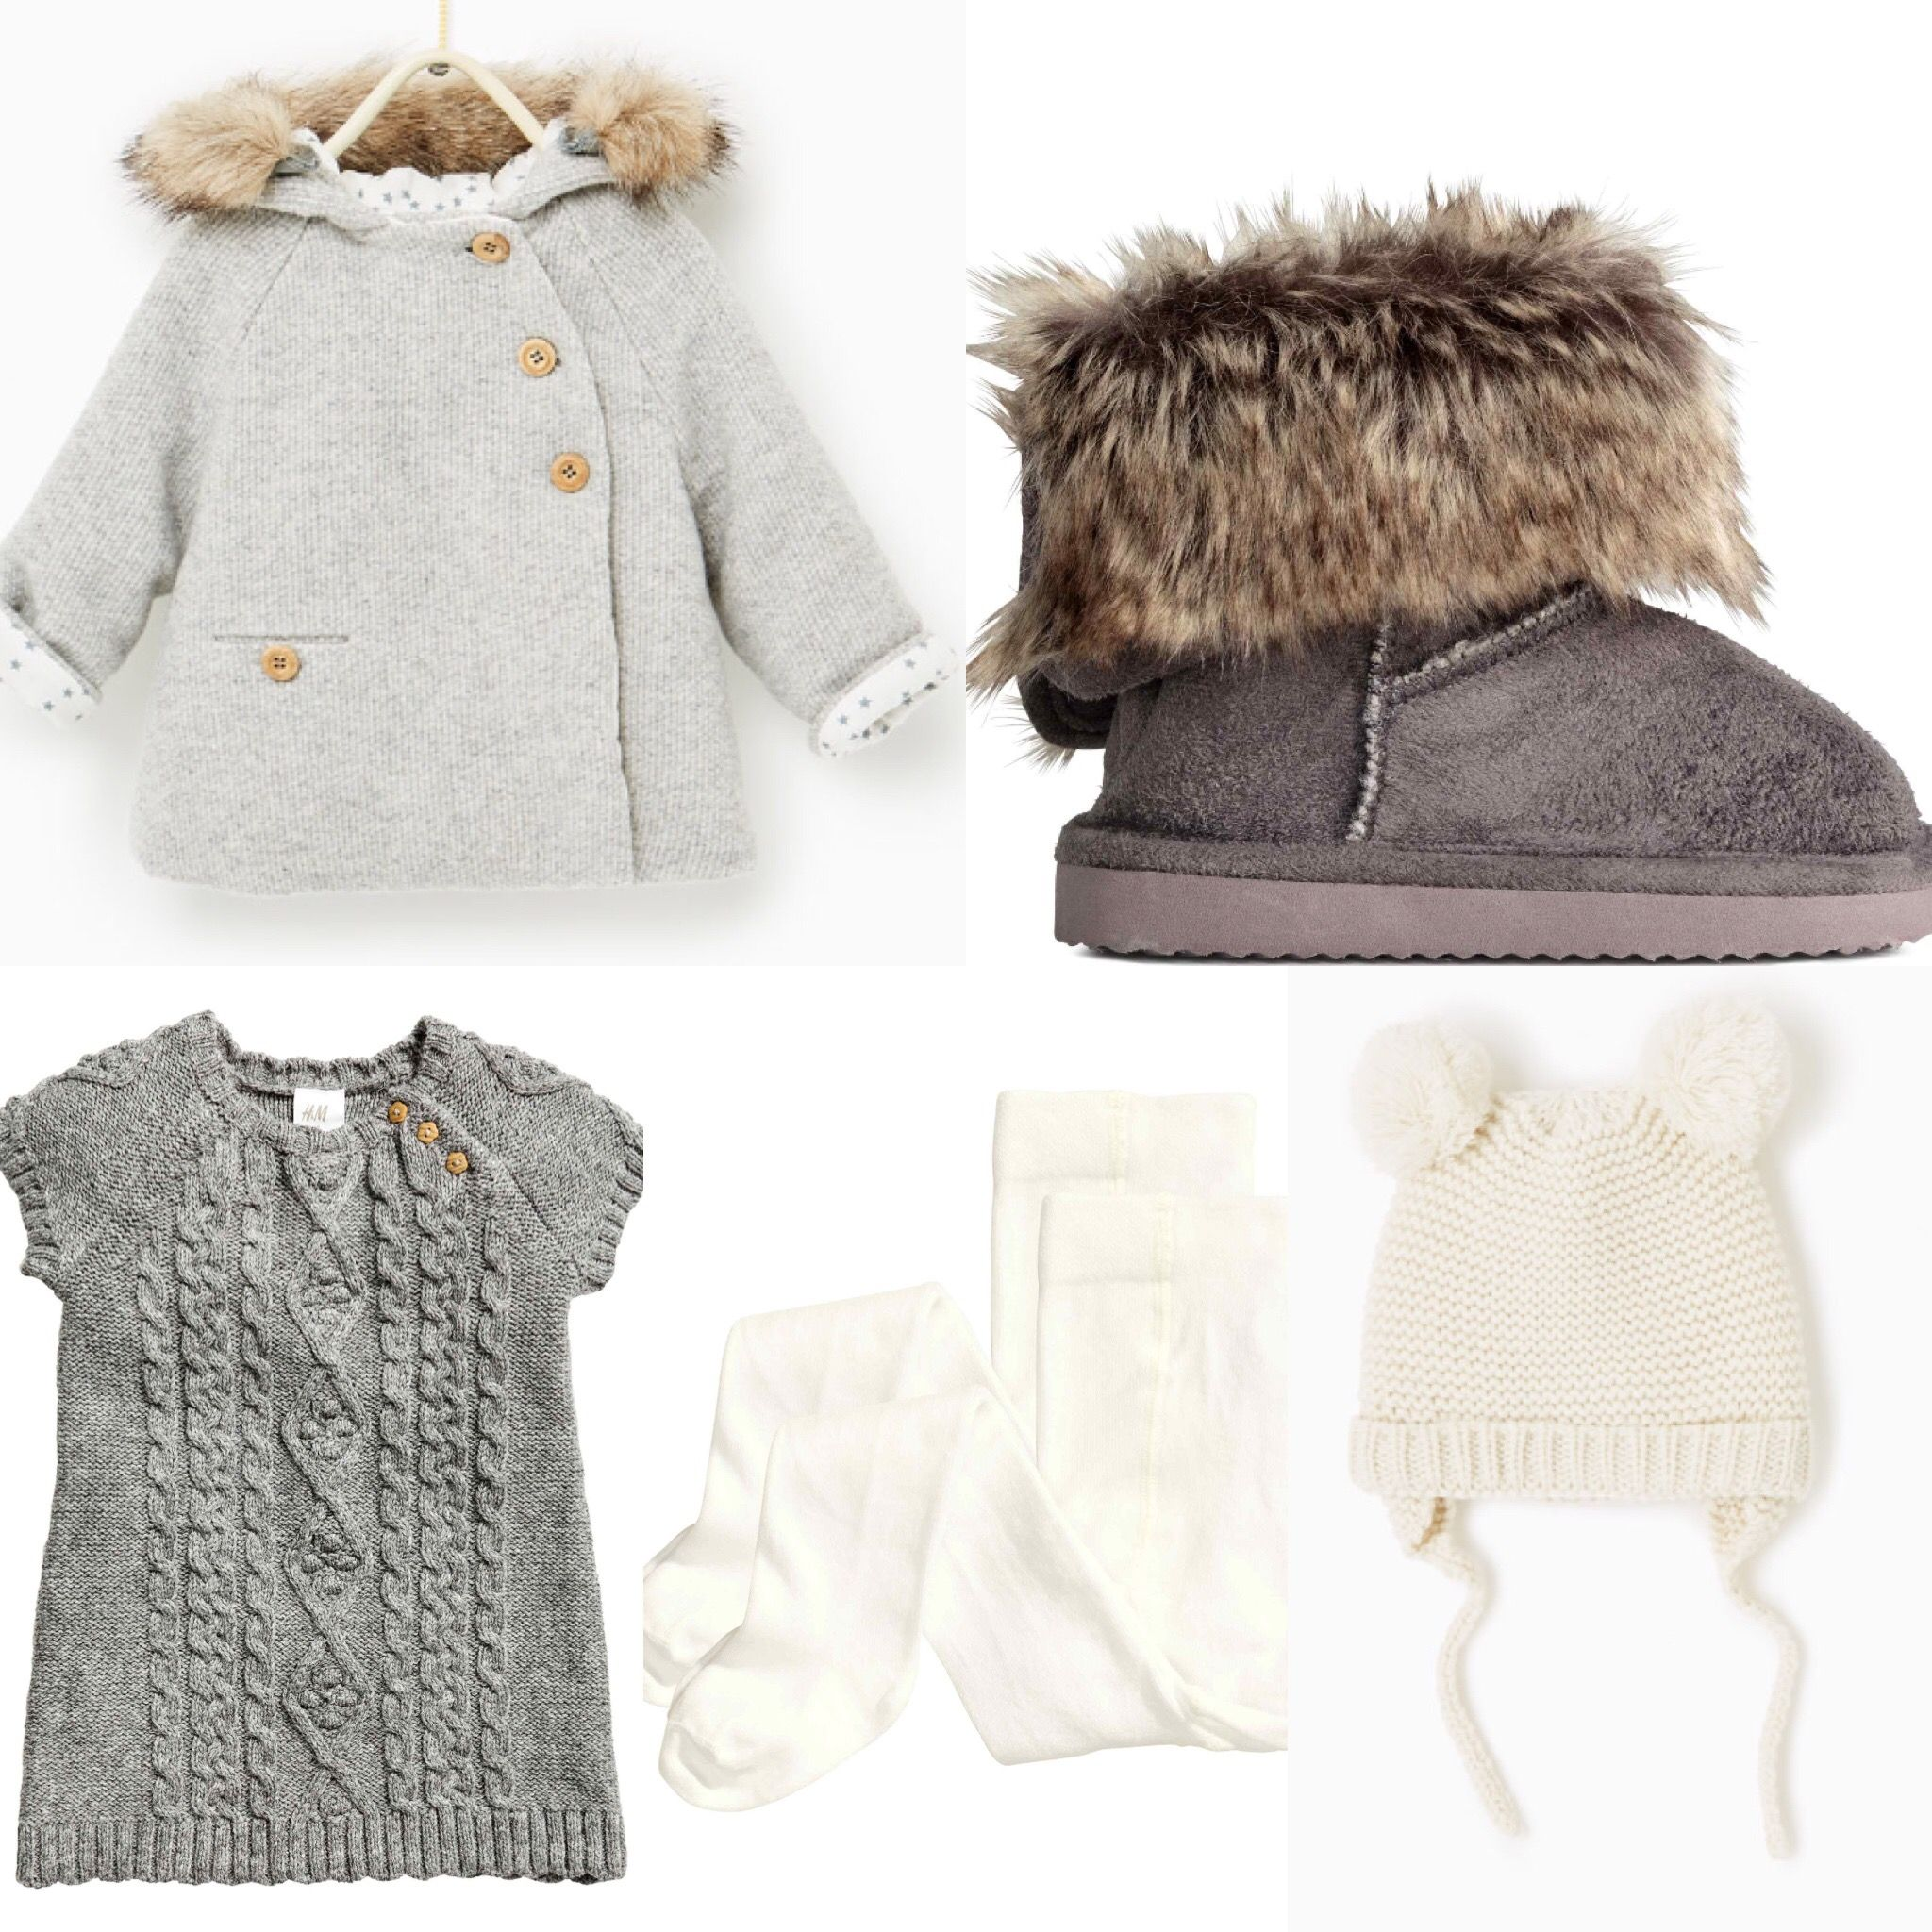 H&M Zara 2016 fall baby girl outfit idea H&M Grey knitted dress